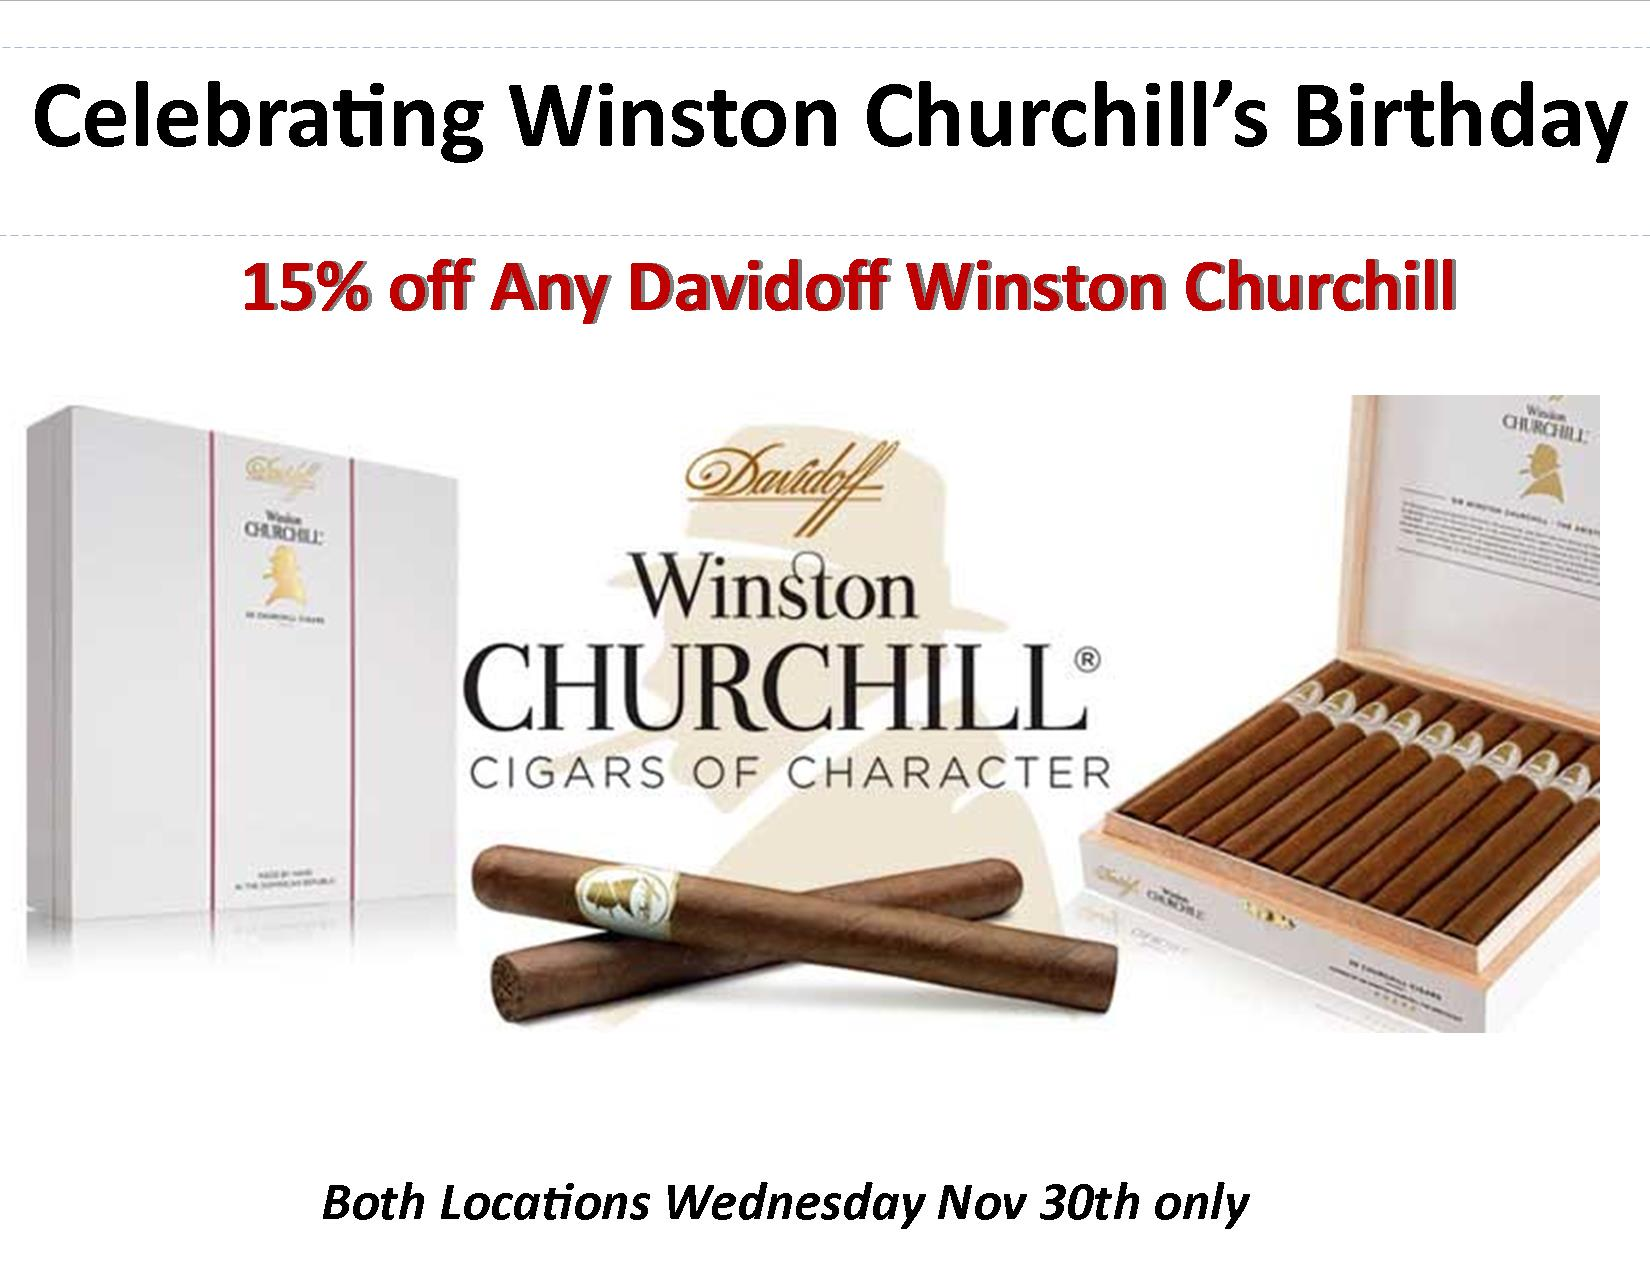 Wednesday Nov 30th Celebrating Winston Churchill's birthday